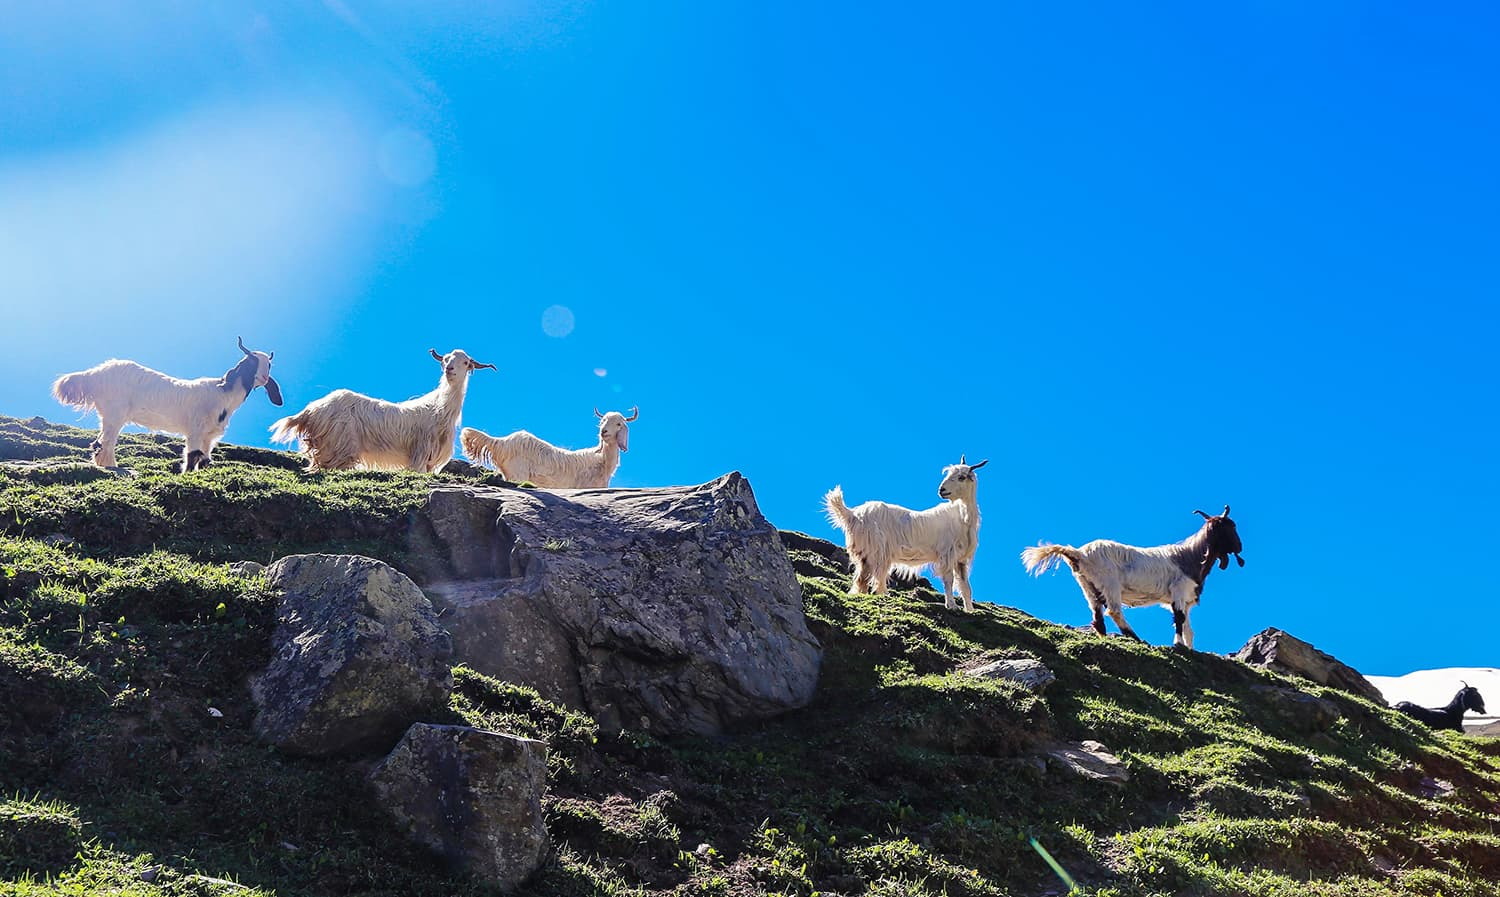 A group of goats stare down at trekkers in Kalam Banda. ─ Photo by author